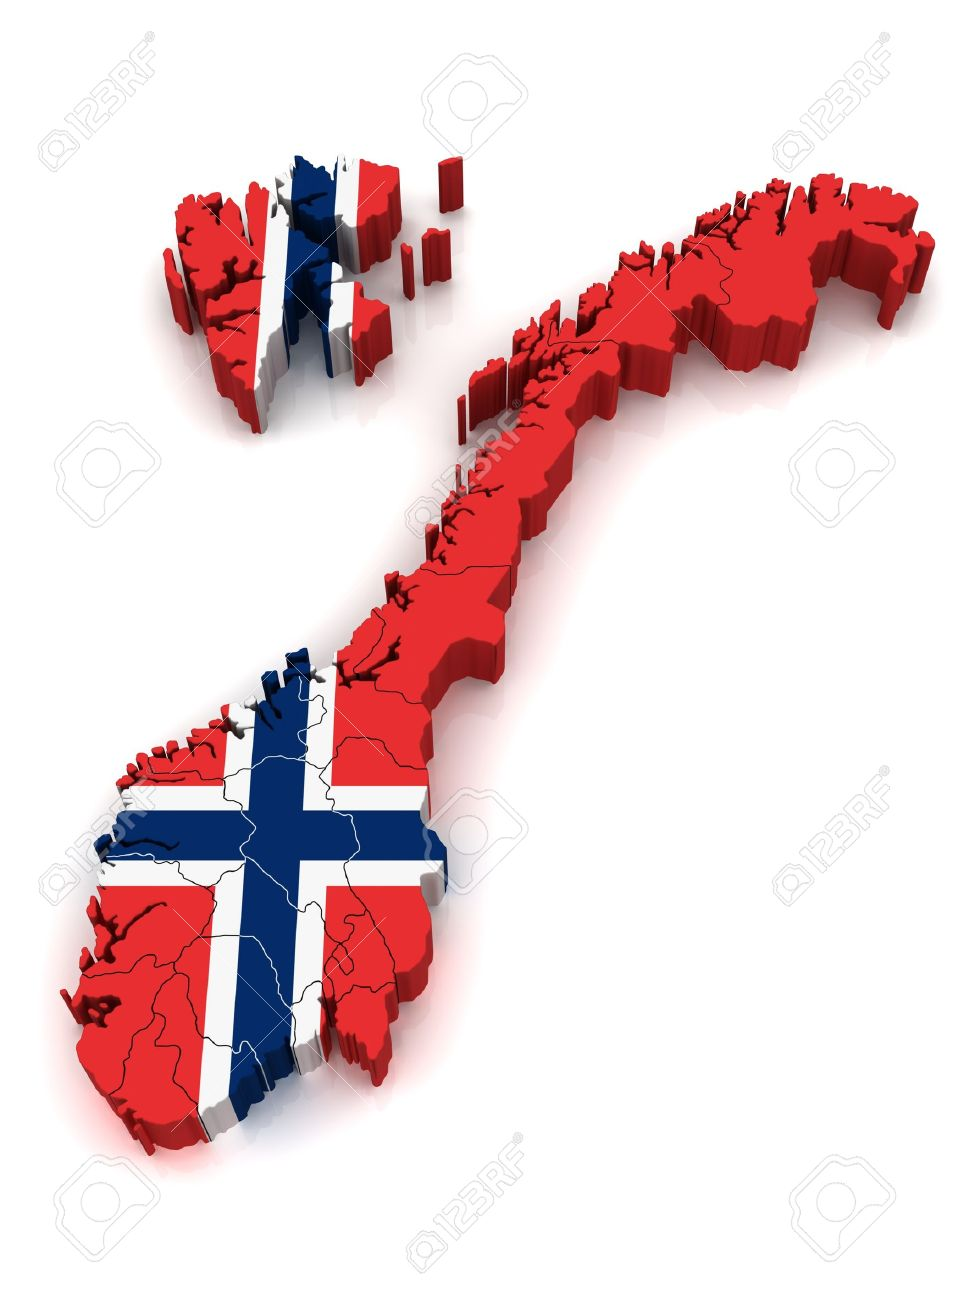 D Map Of Norway Stock Photo Picture And Royalty Free Image - Norway map clipart